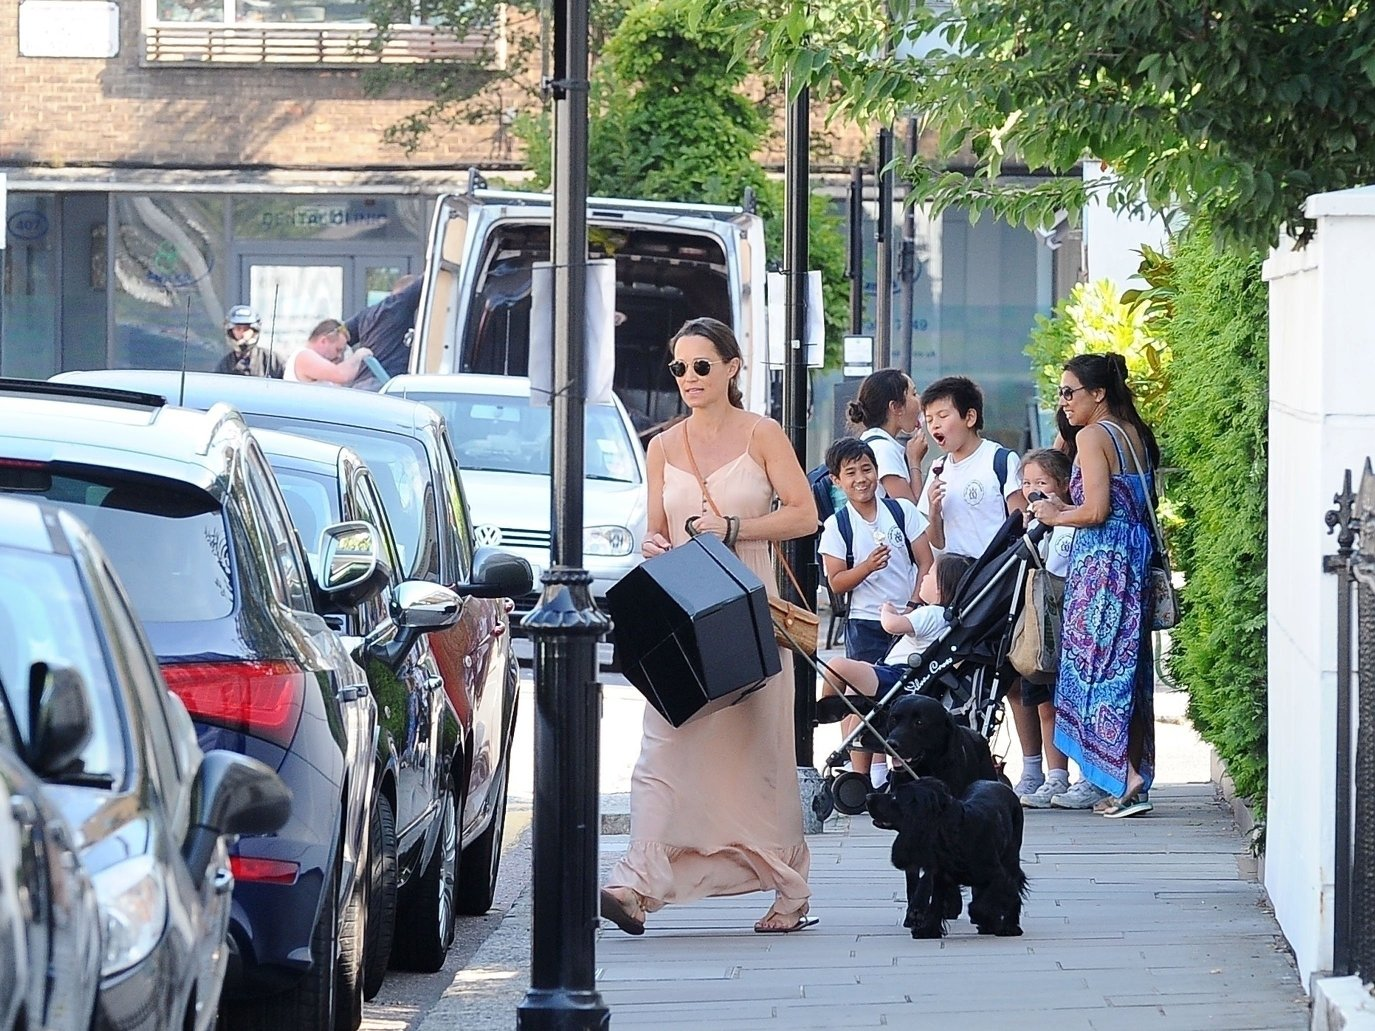 BGUK_1279146 - London, UNITED KINGDOM  - *EXCLUSIVE*  - *WEB MUST CALL FOR PRICING*  Mum-to-be Pippa Matthews looks radiant during her pregnancy in the summer sunshine on the King's Road in Chelsea. Pippa who is expecting her first child with husband James Matthews is spotted walking her dog and wore a long peach dress holding a big gift box in hand.  Pictured: Pippa Matthews - Pippa Middleton    *UK Clients - Pictures Containing Children Please Pixelate Face Prior To Publication*, Image: 376859448, License: Rights-managed, Restrictions: , Model Release: no, Credit line: Profimedia, Xposurephotos